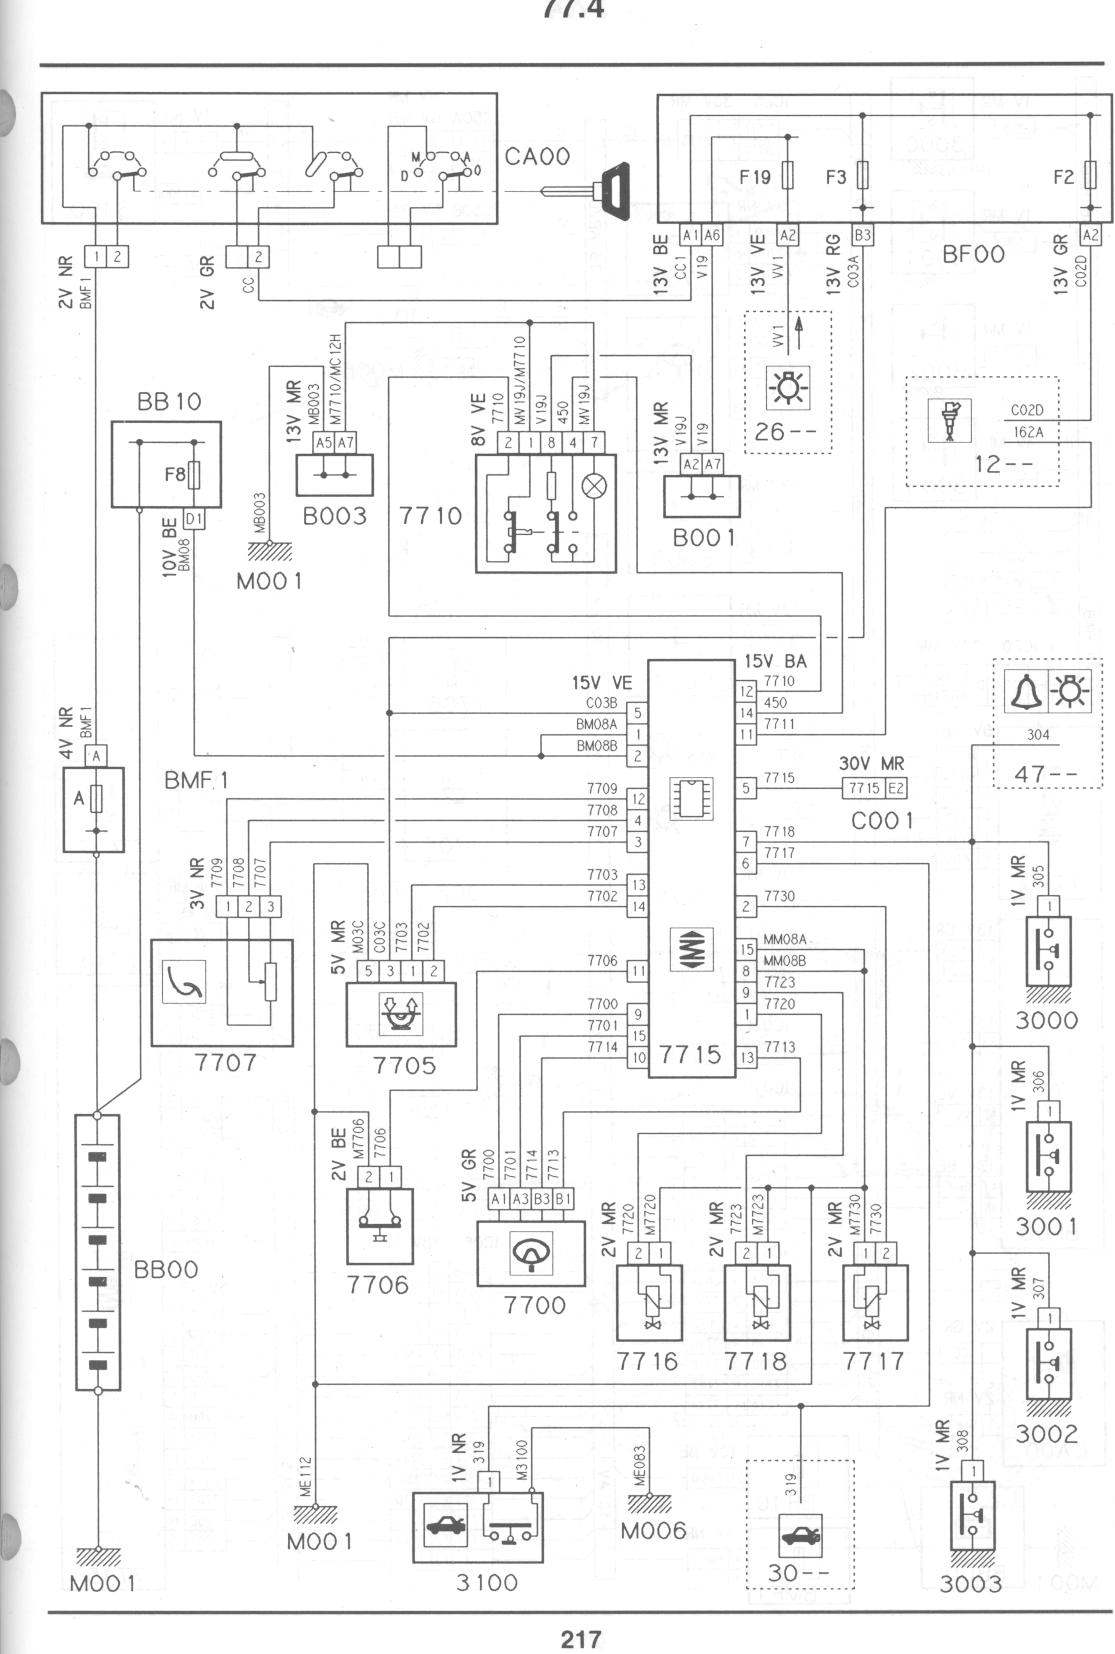 Citroen Berlingo Wiring Diagram : Citroen berlingo fuse box cx wiring diagram